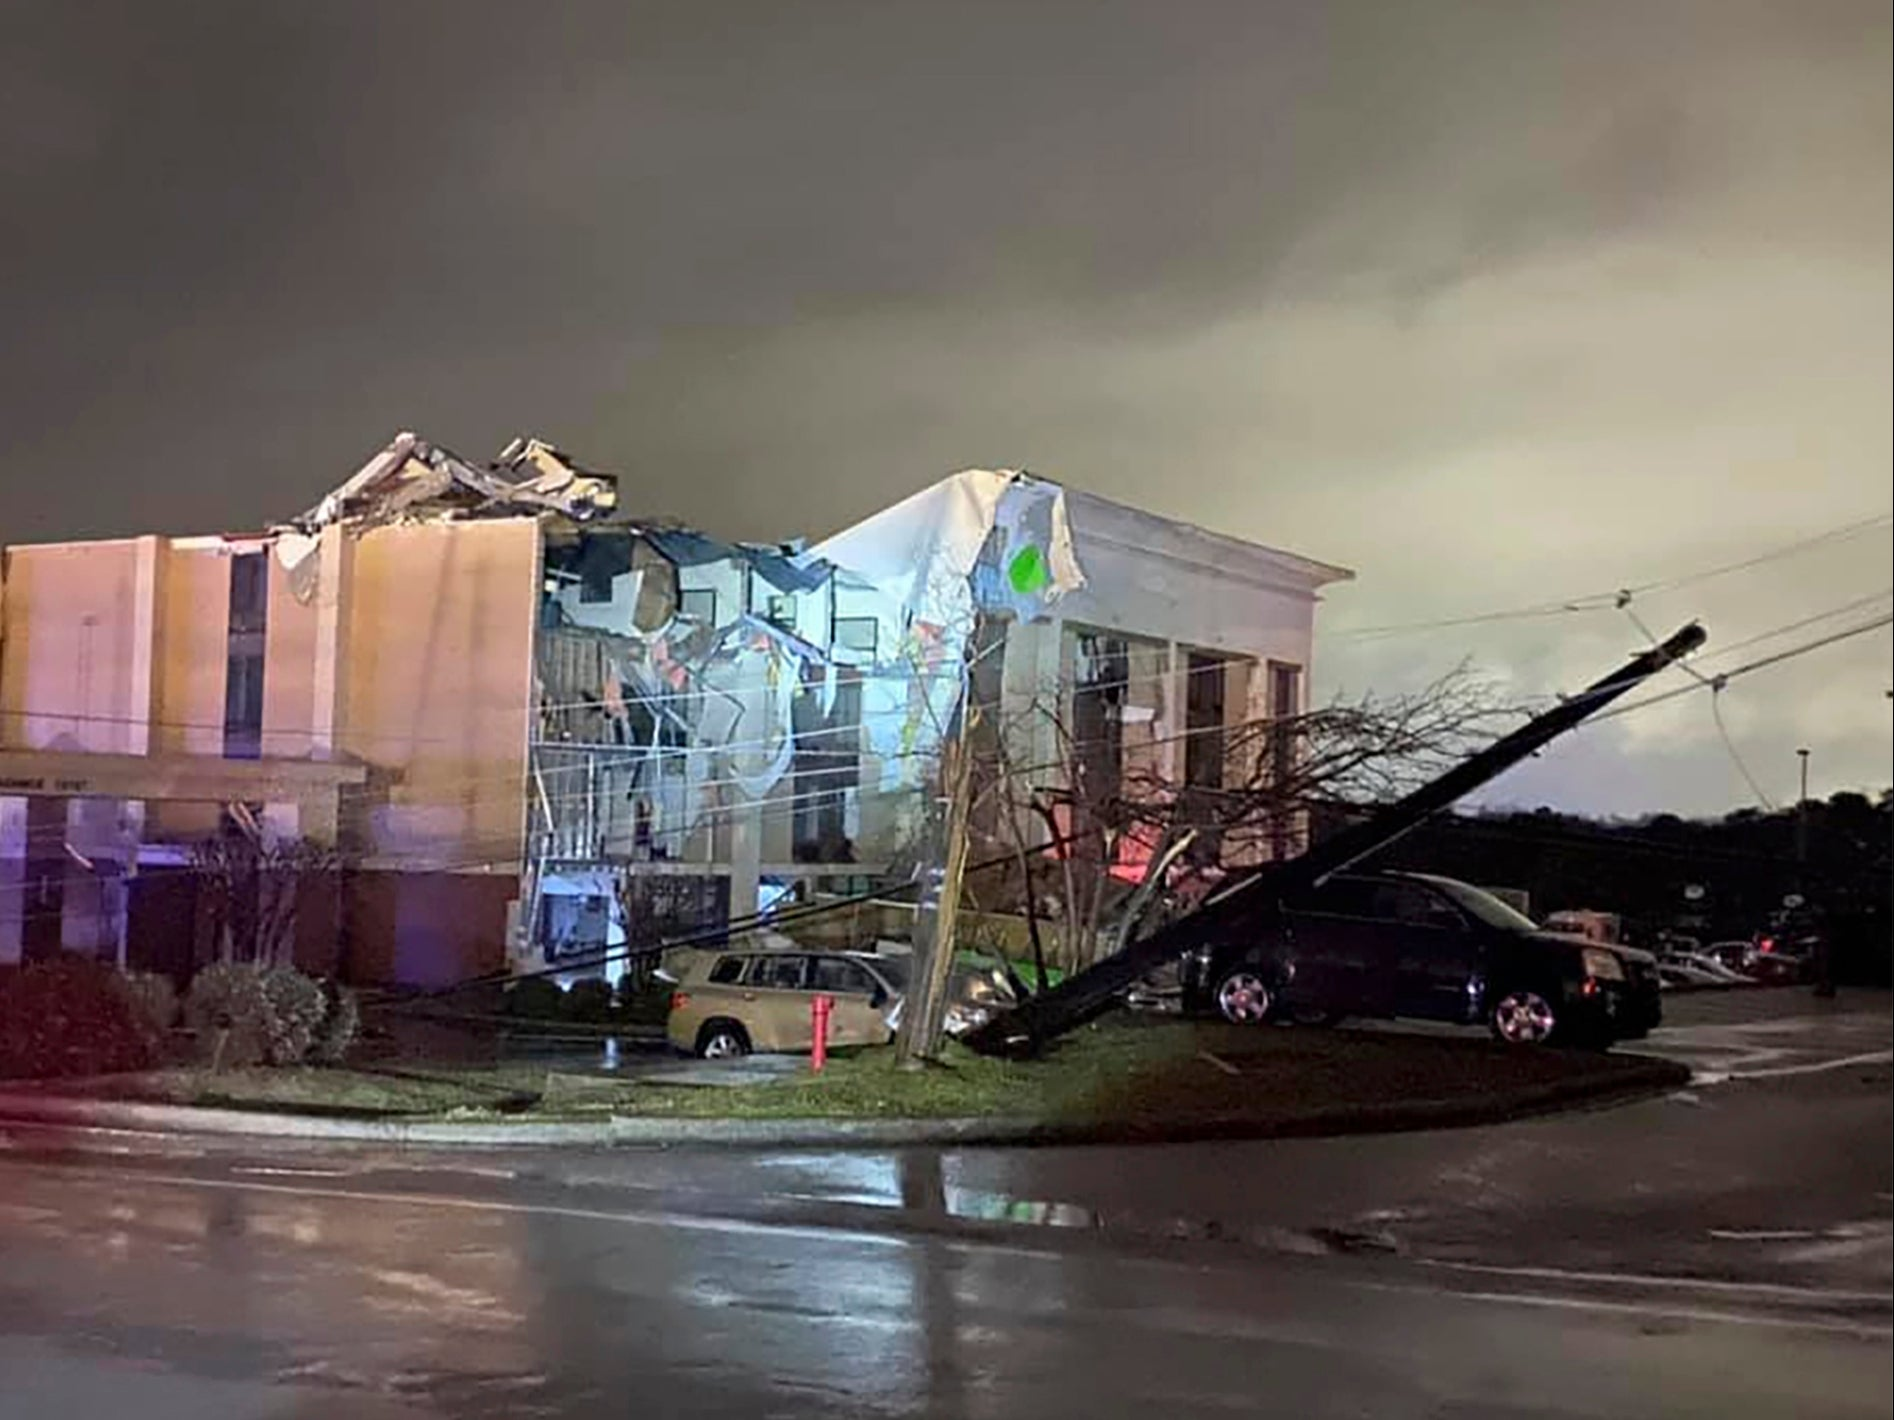 People still trapped in their homes after deadly Alabama tornado